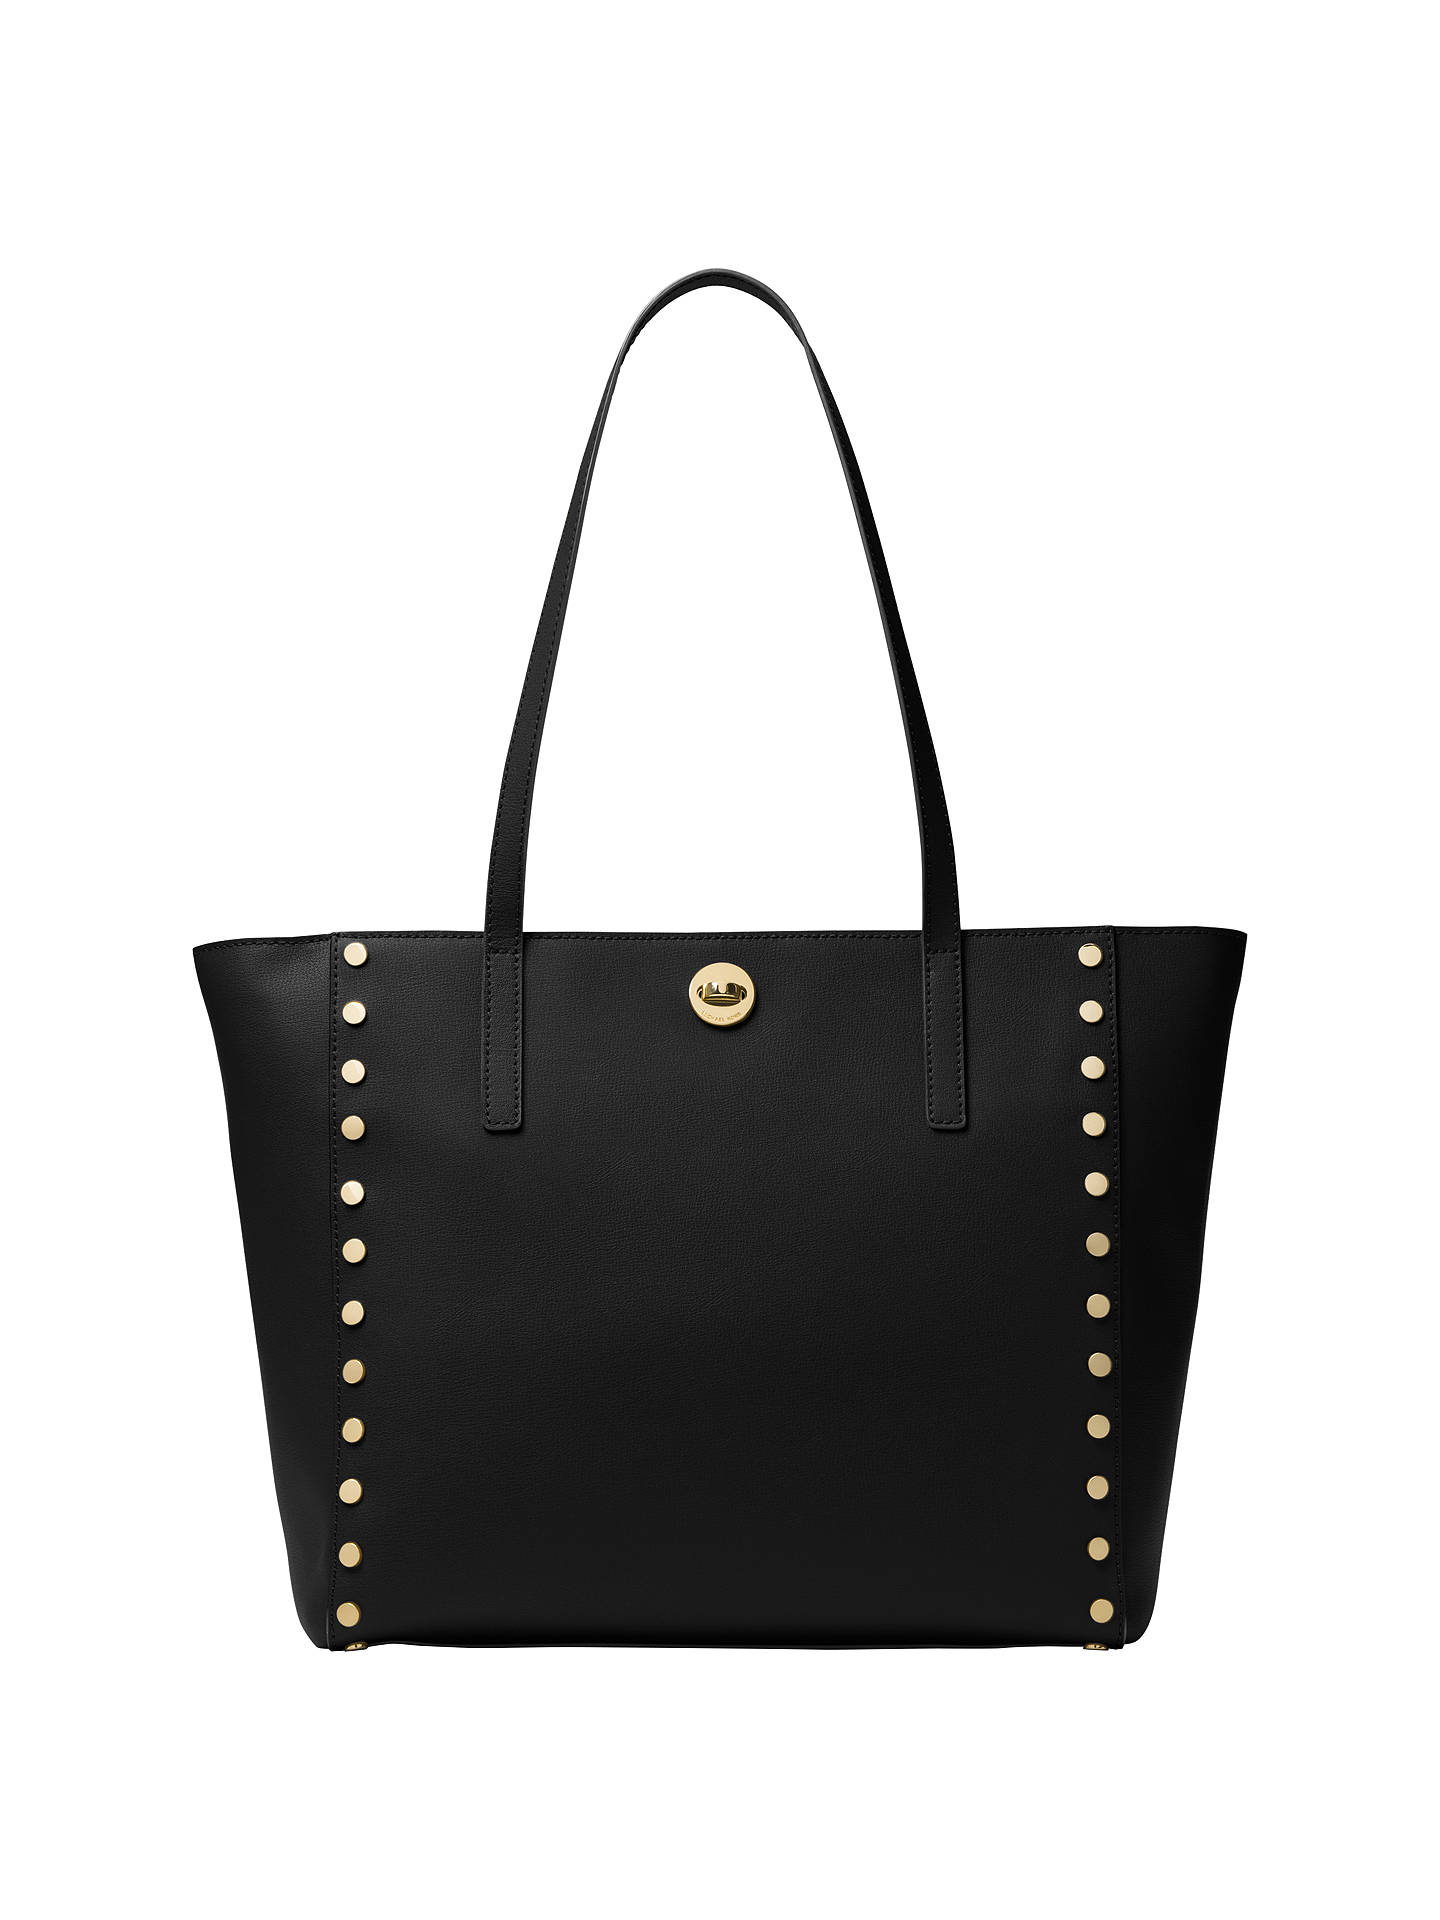 c0722080a2a6 Buy MICHAEL Michael Kors Rivington Leather Studded Large Tote Bag, Black  Online at johnlewis.